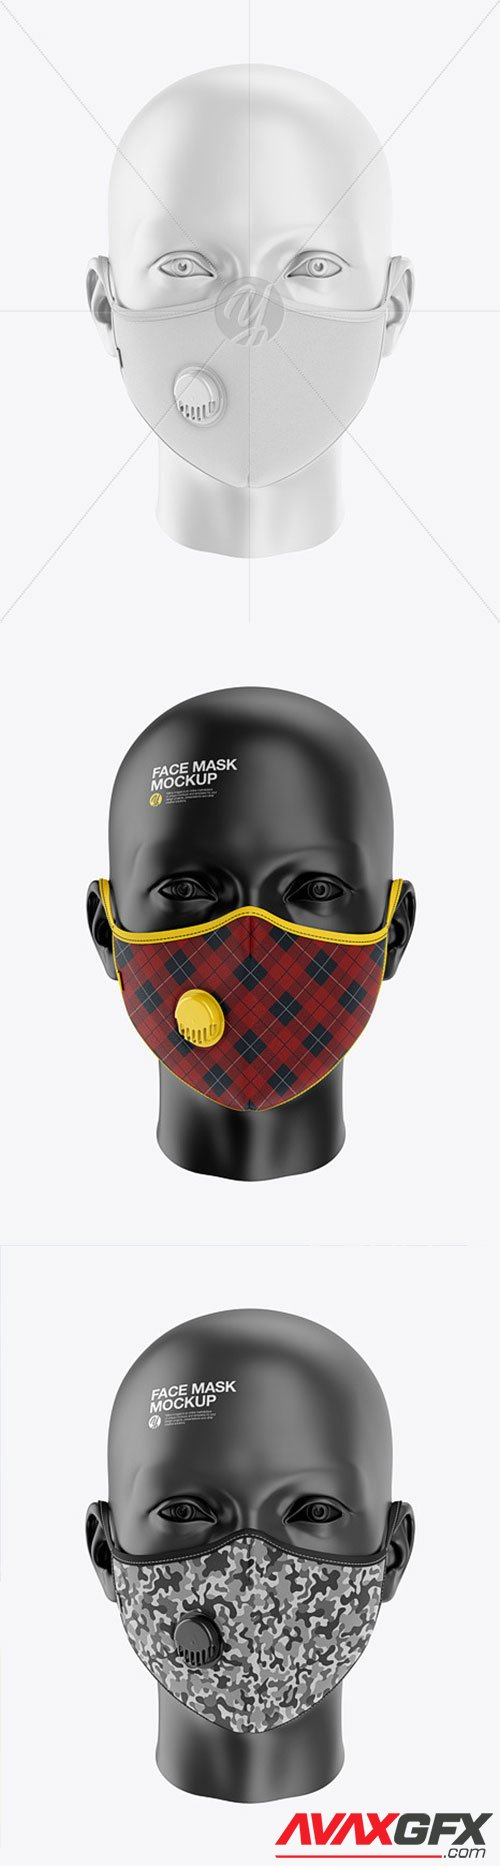 Anti-Pollution Face Mask with Exhalation Valve 62201